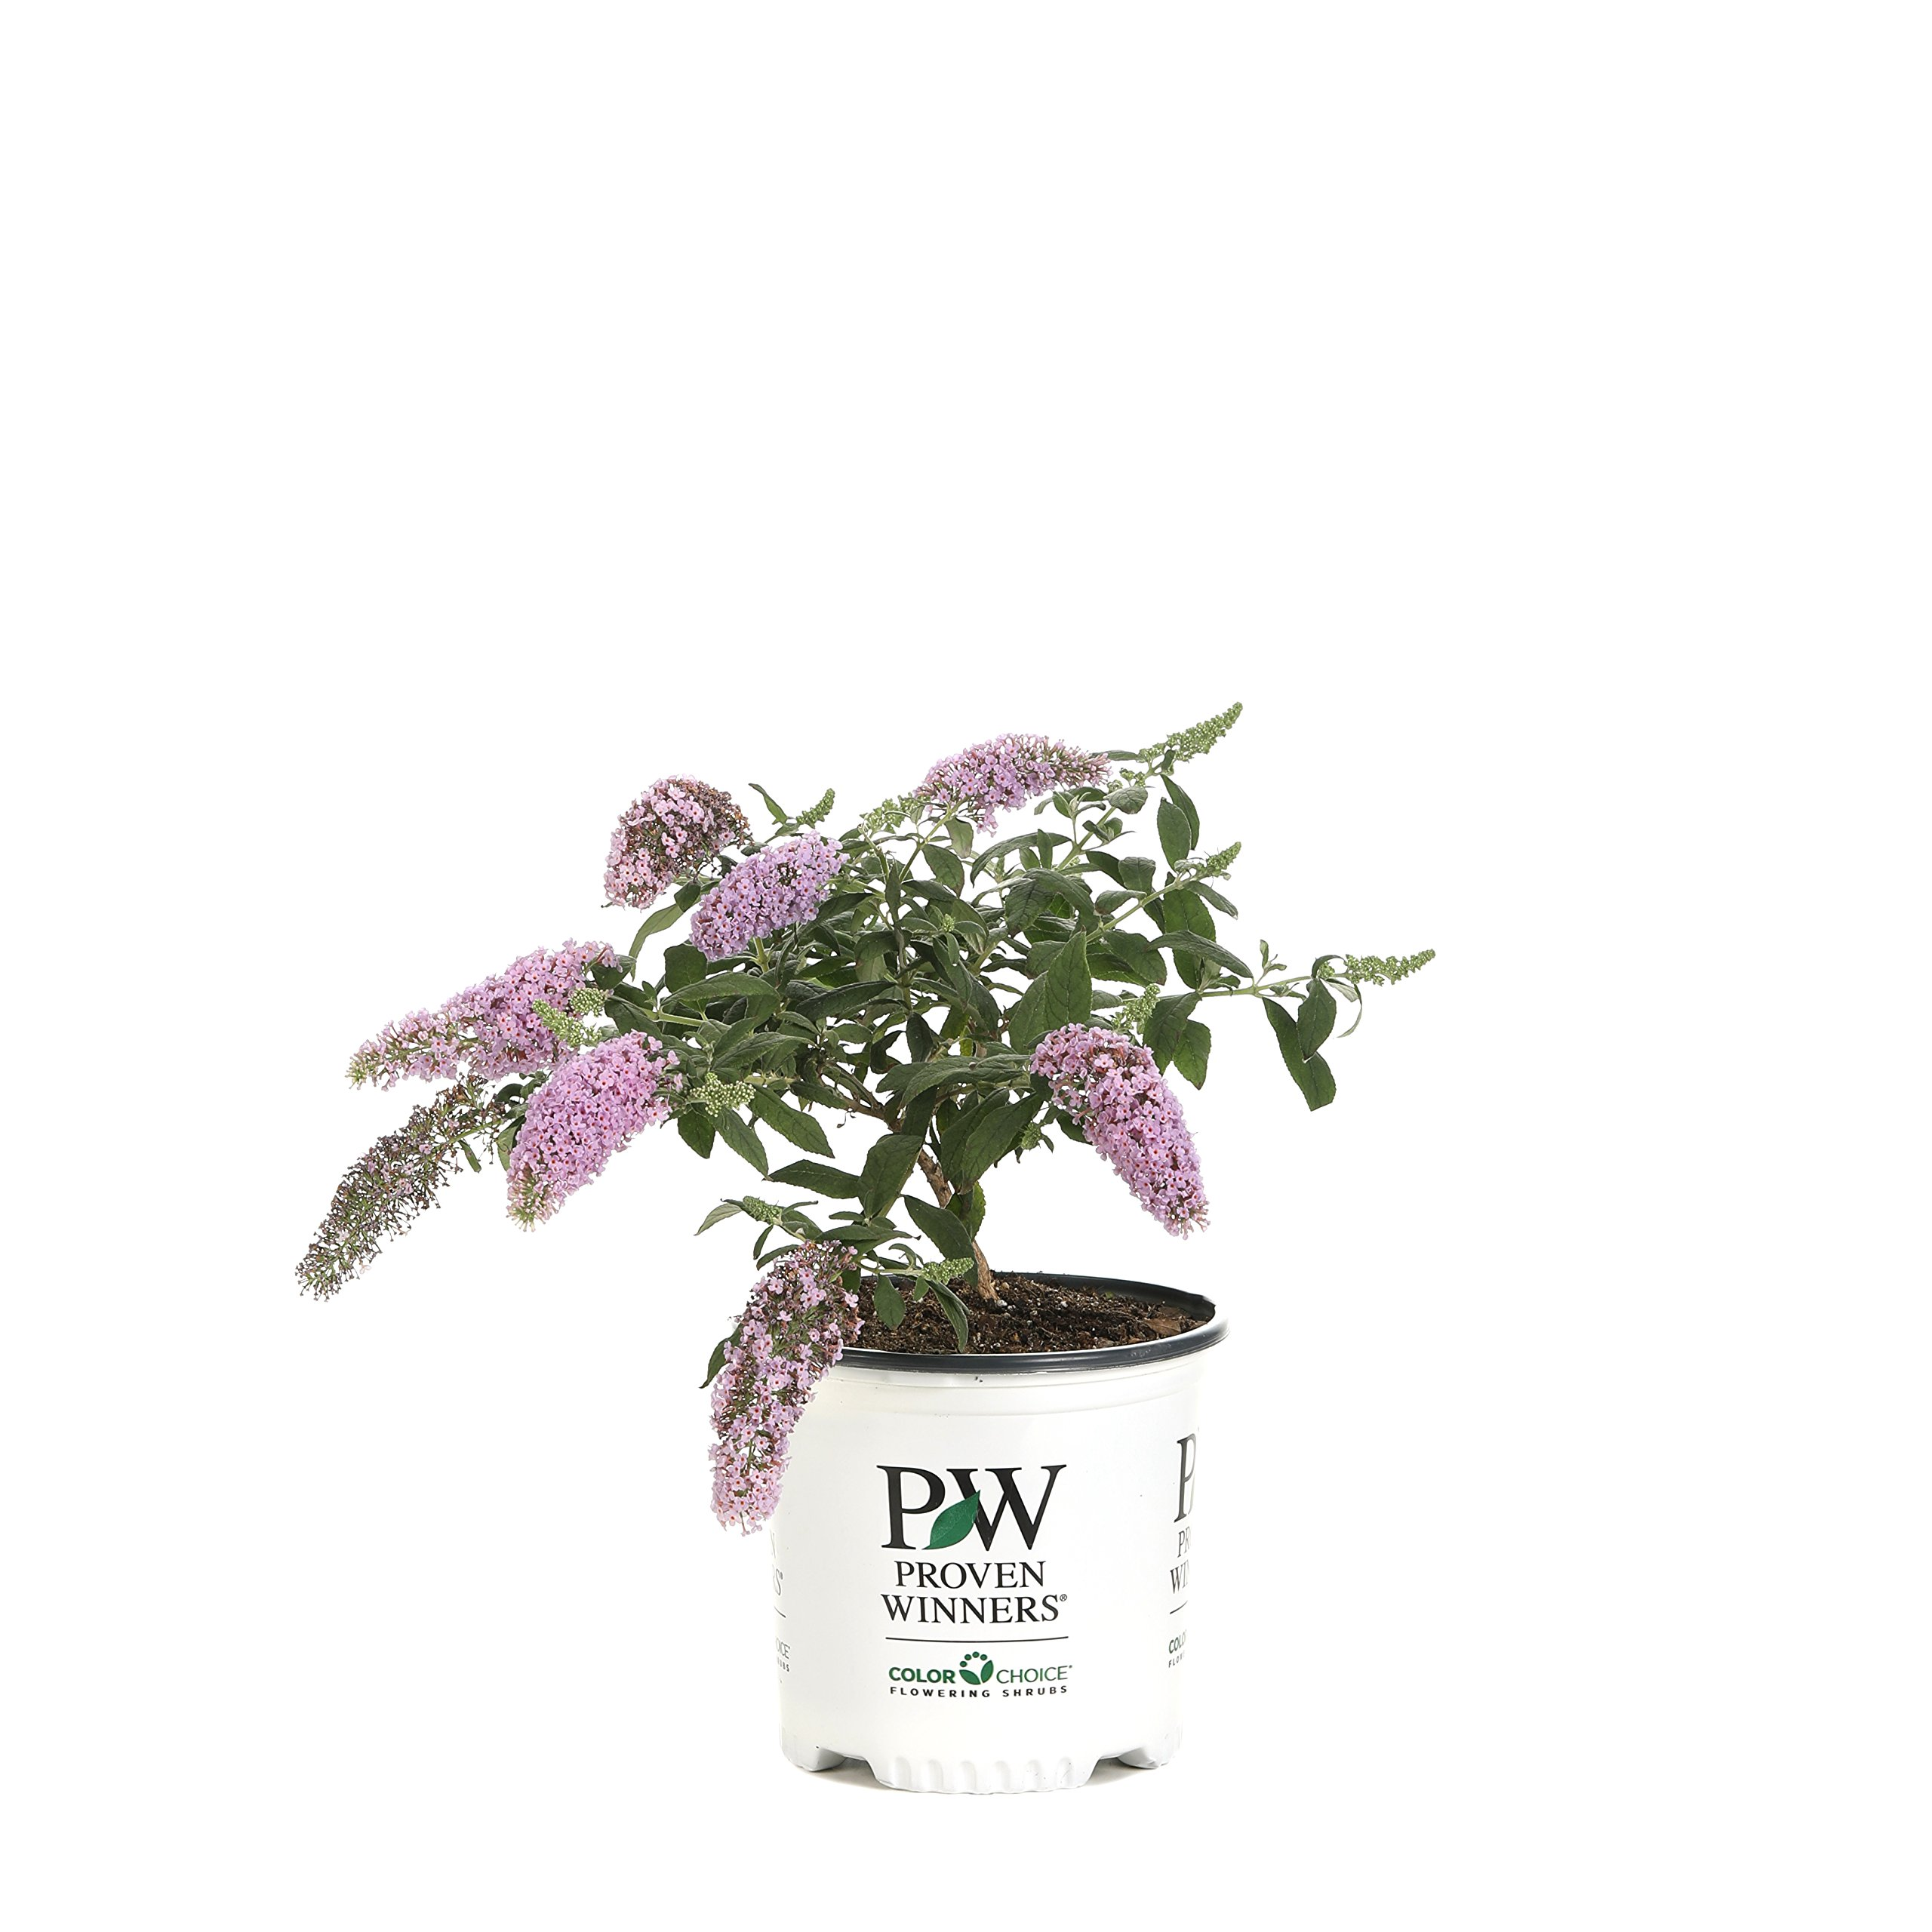 Pugster Pink Butterfly Bush (Buddleia) Live Shrub, Pink Flowers, 1 Gallon